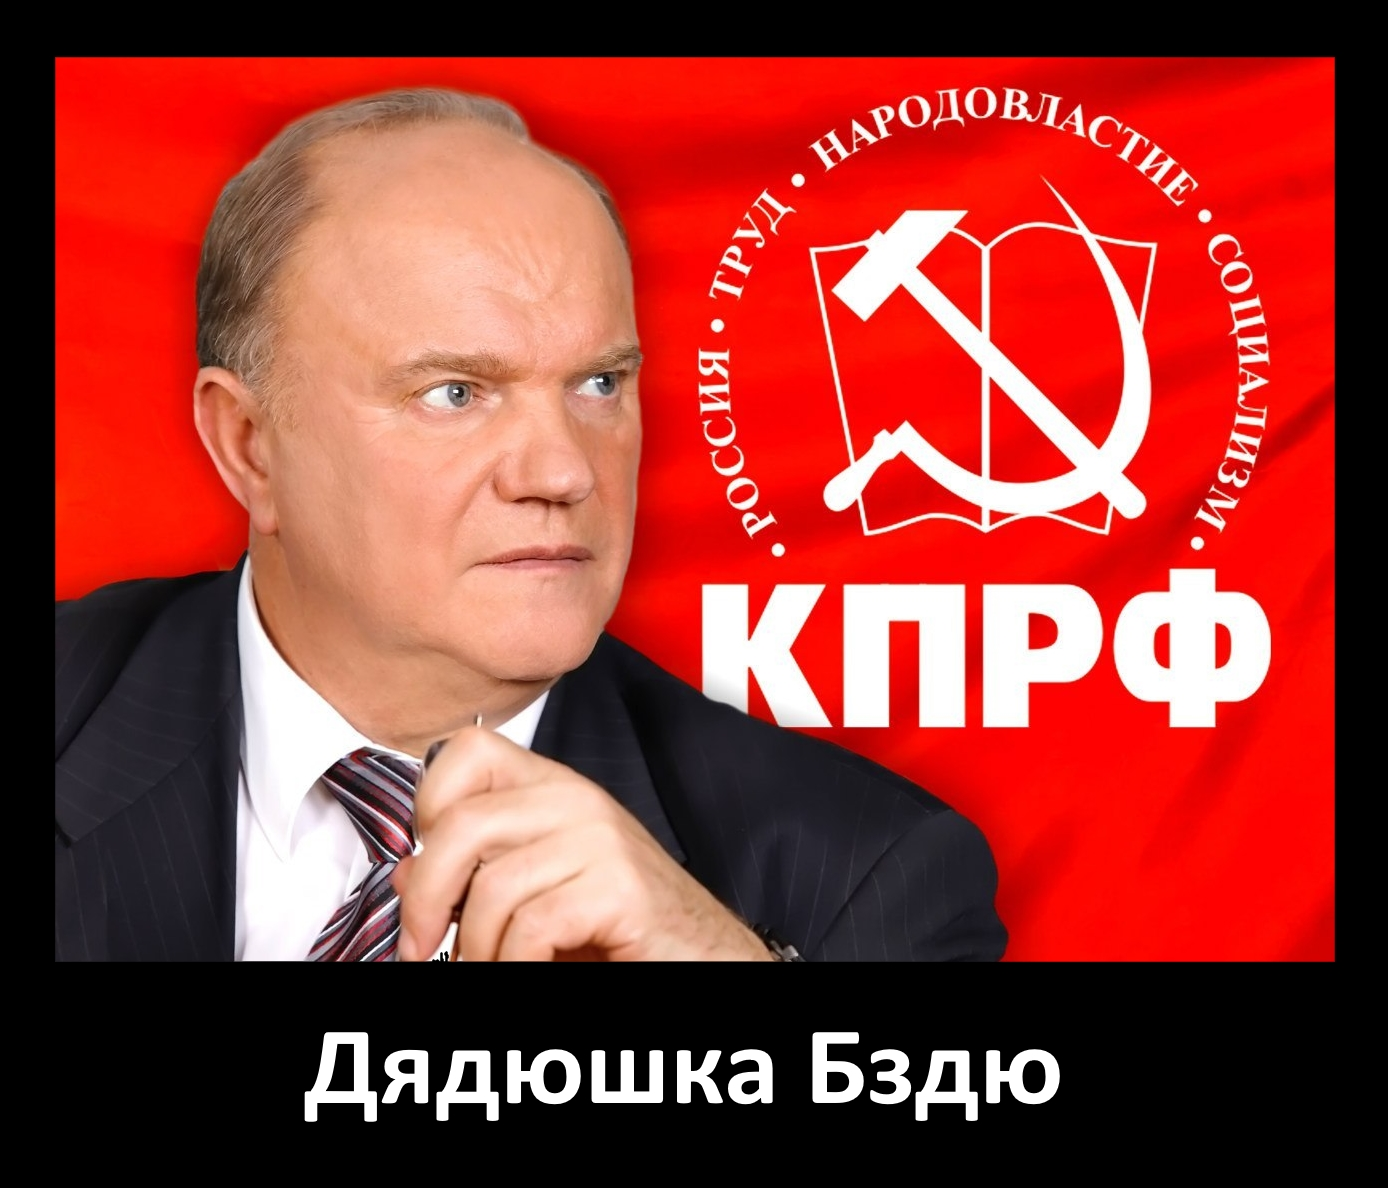 Зюганов_Zyuganov, Дядюшка_Бздю, Uncle_Bzdyu